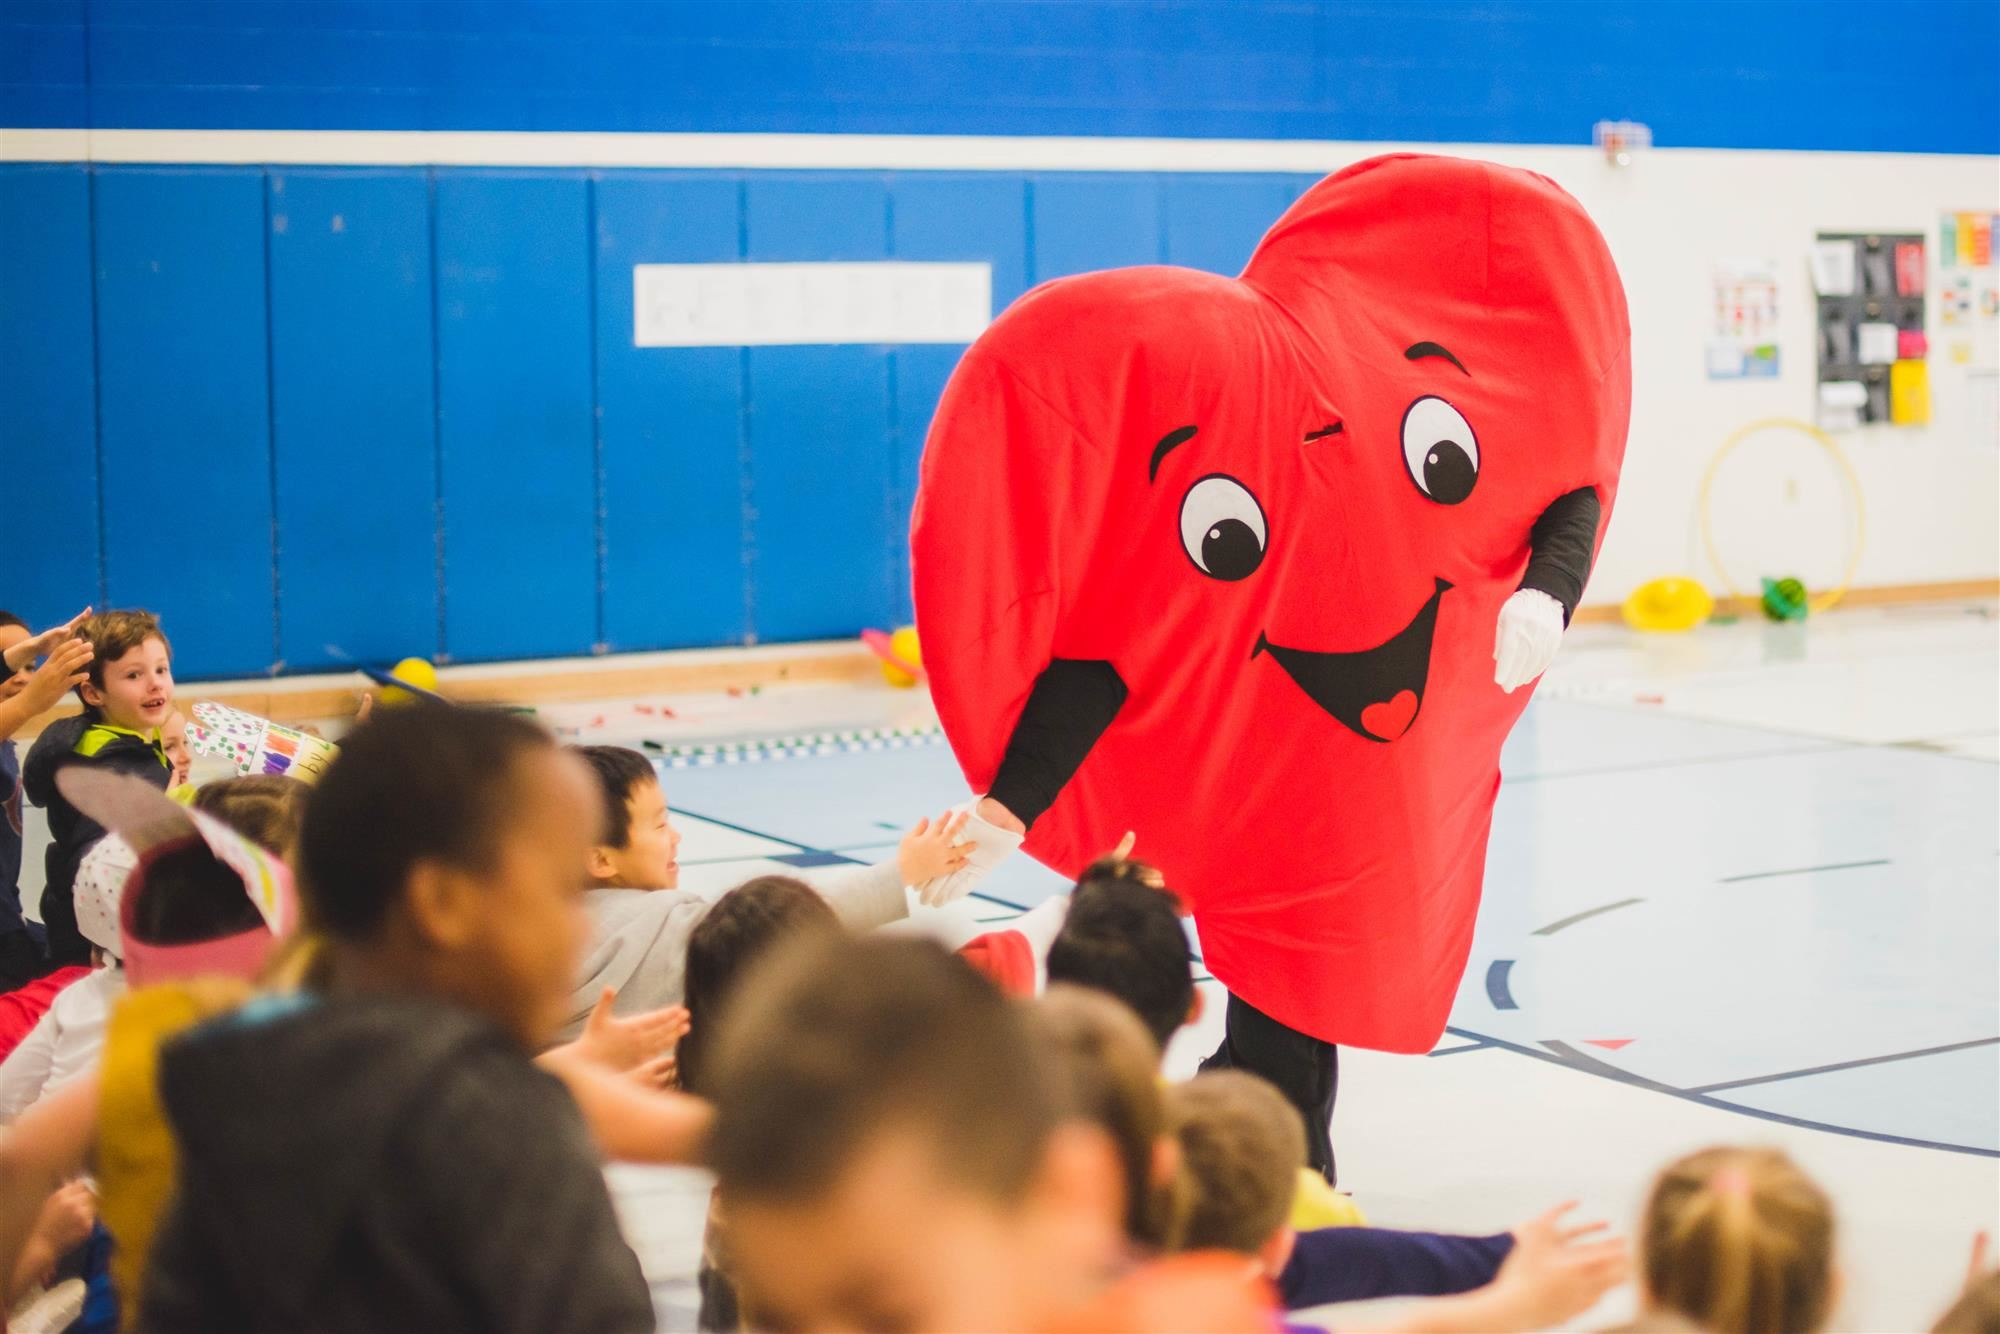 heart mascot greets students with high fives